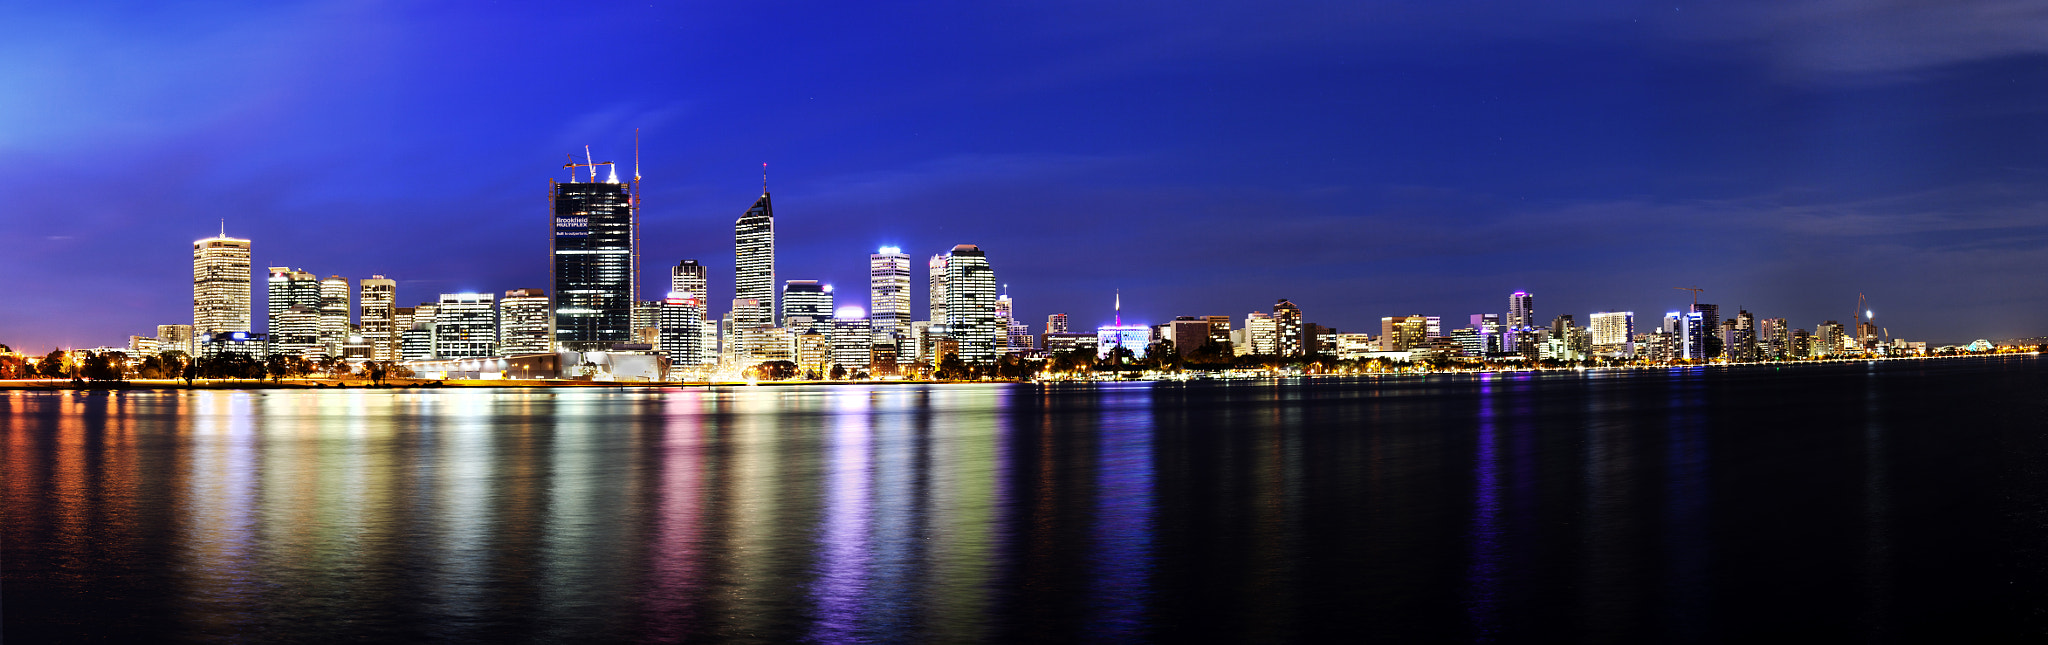 Photograph Twilight over Perth by Jordan  Cantelo on 500px